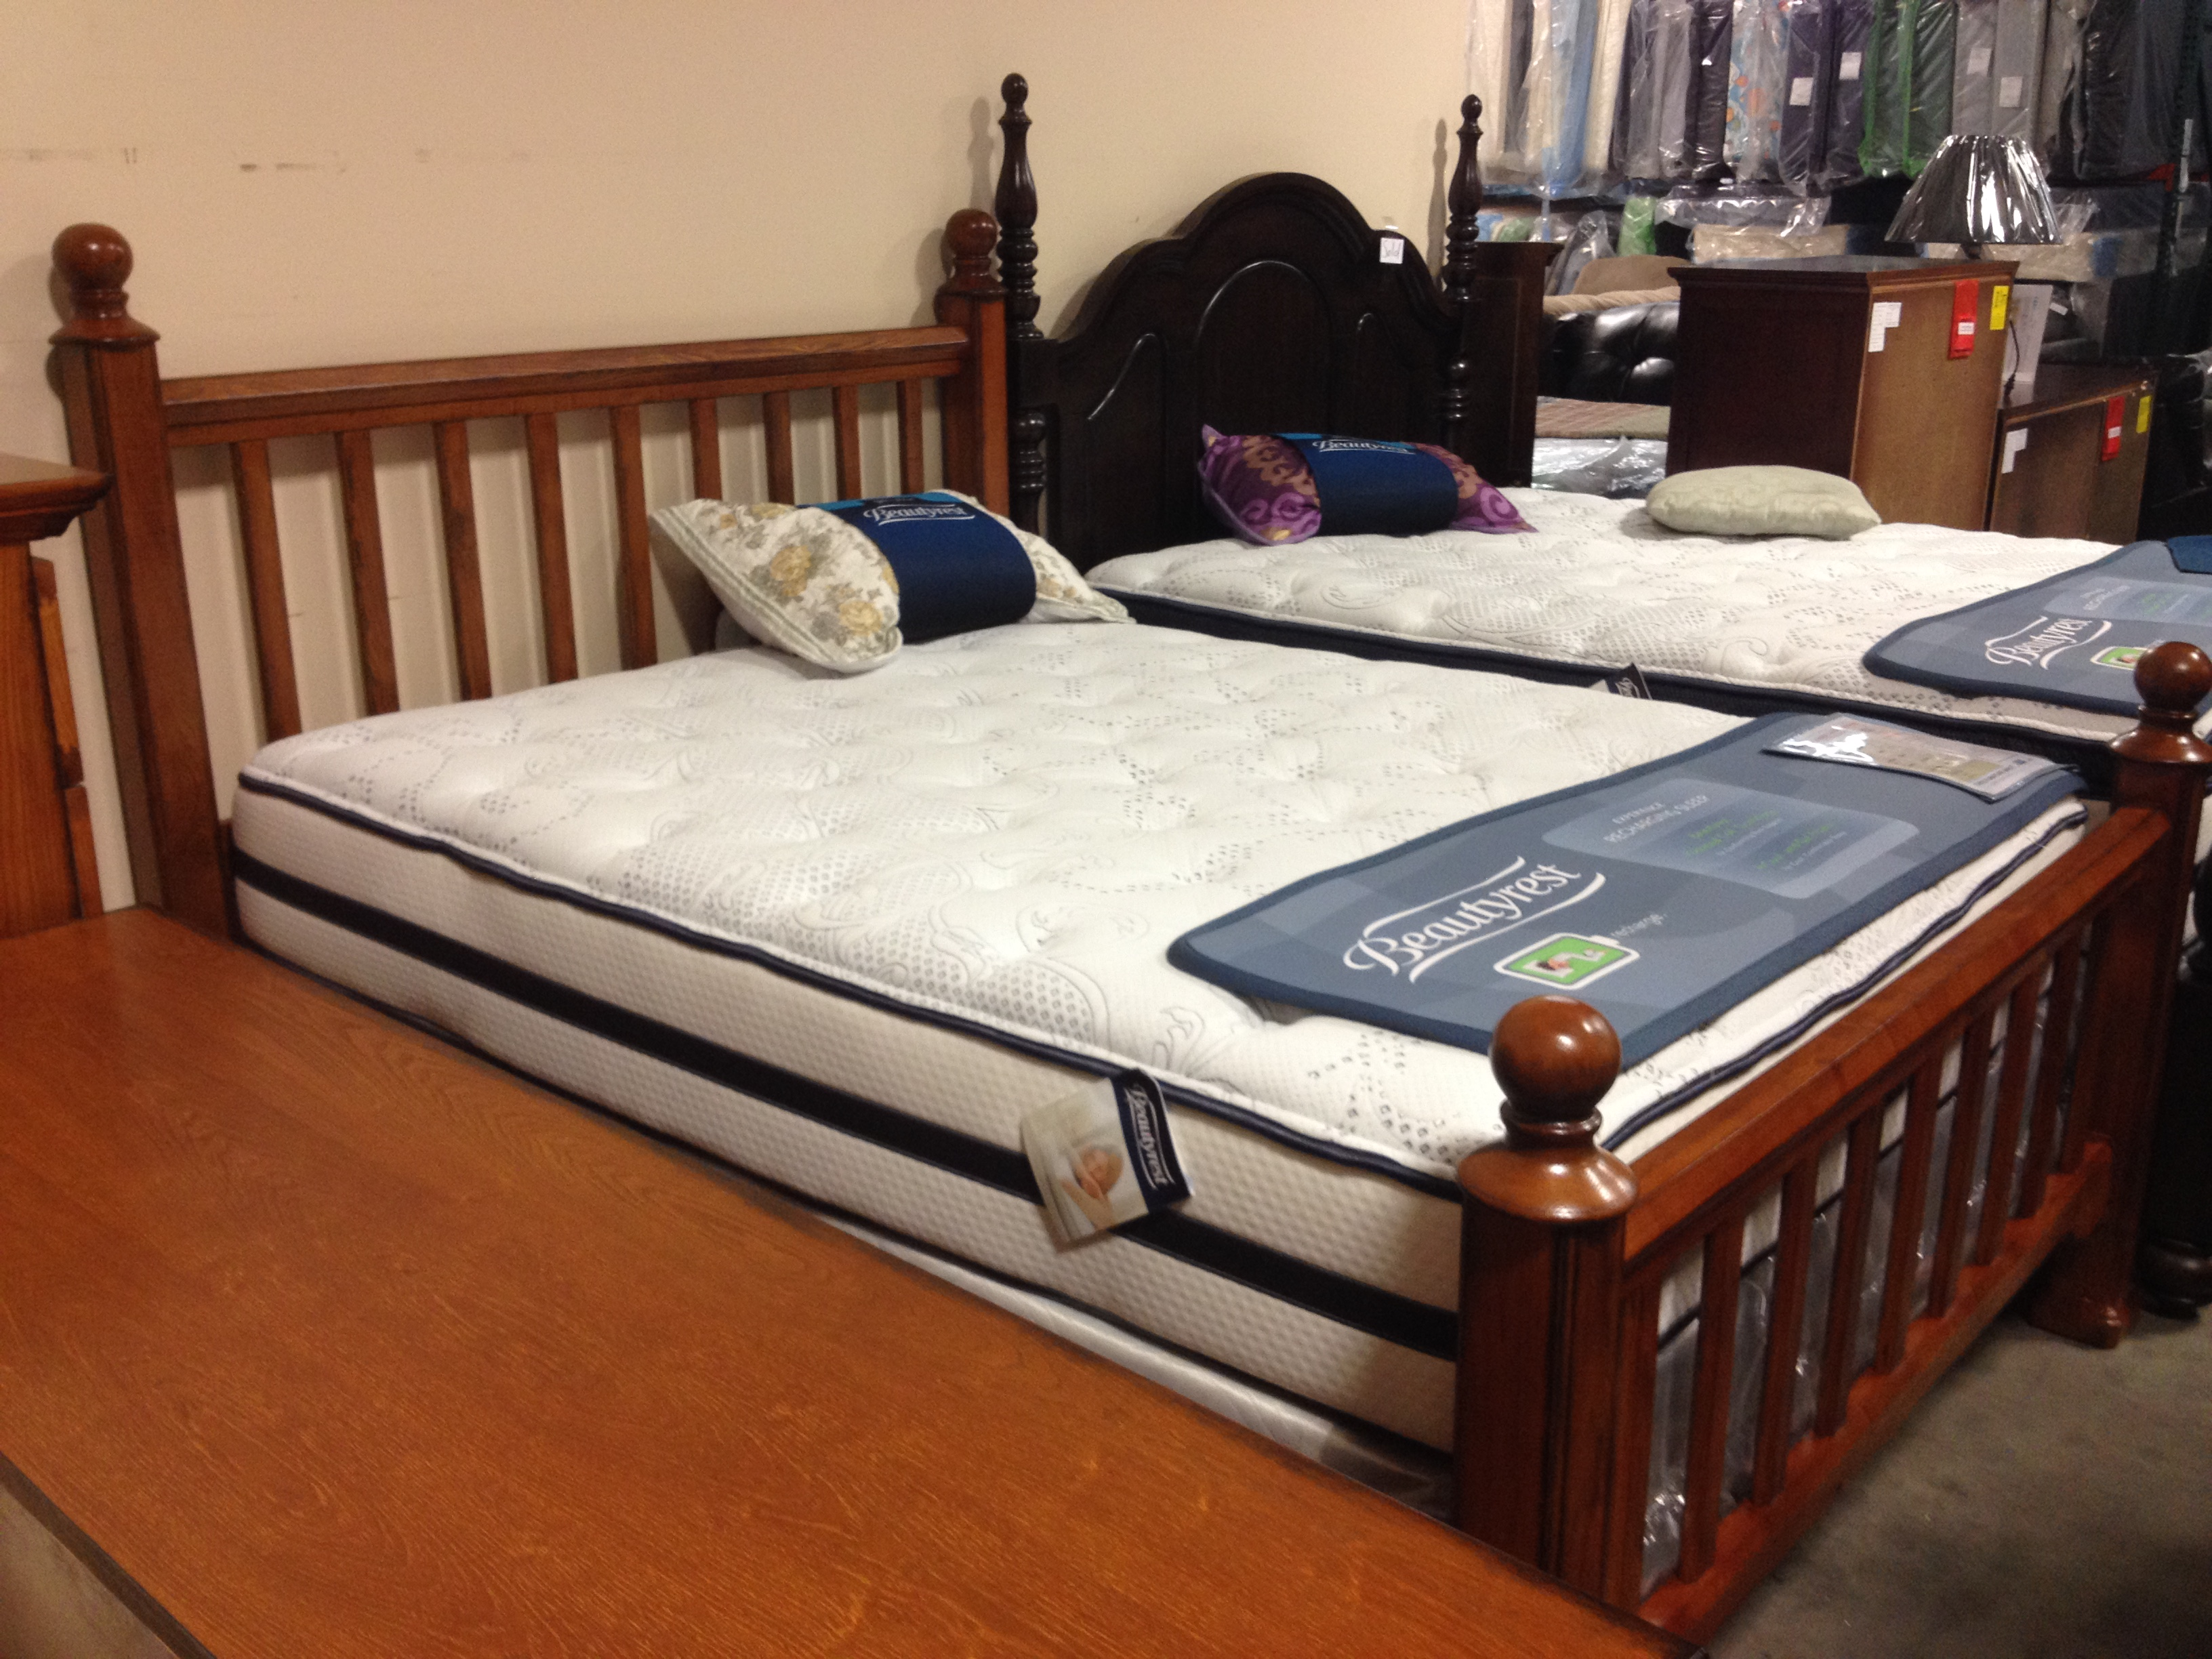 Black Friday Prices This Weekend On New Mattress Sets Bedroom Sets Dining Room Sets Living